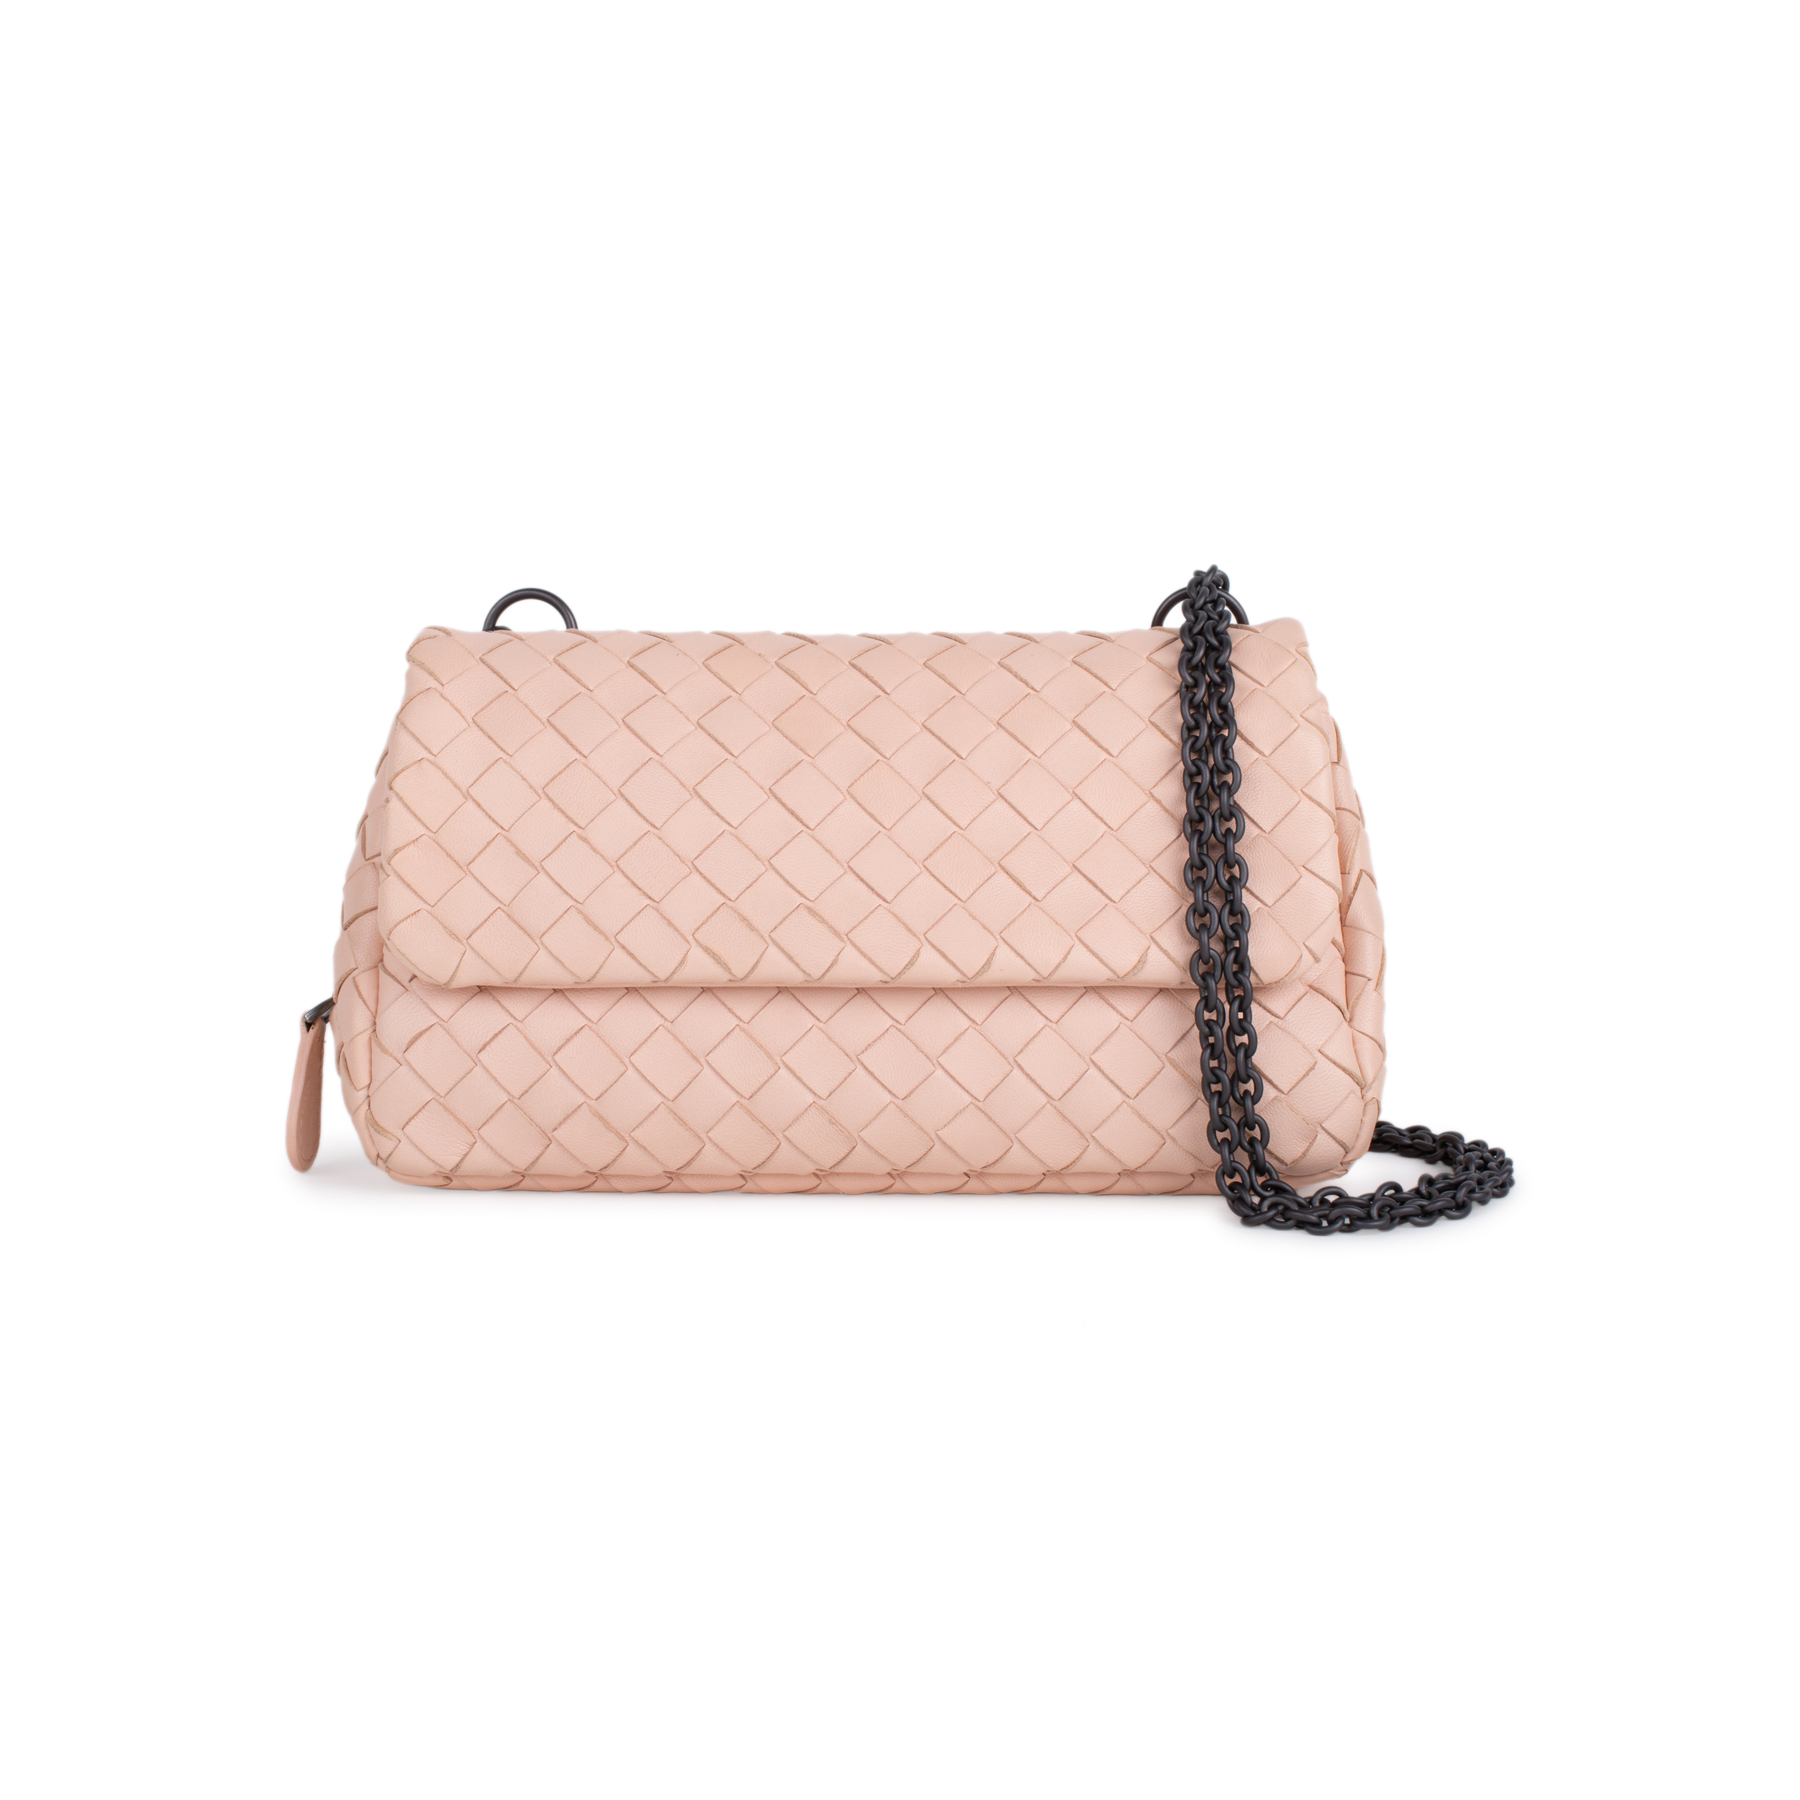 980f5d8dde6d Authentic Second Hand Bottega Veneta Intrecciato Mini Crossbody Bag  (PSS-434-00010)